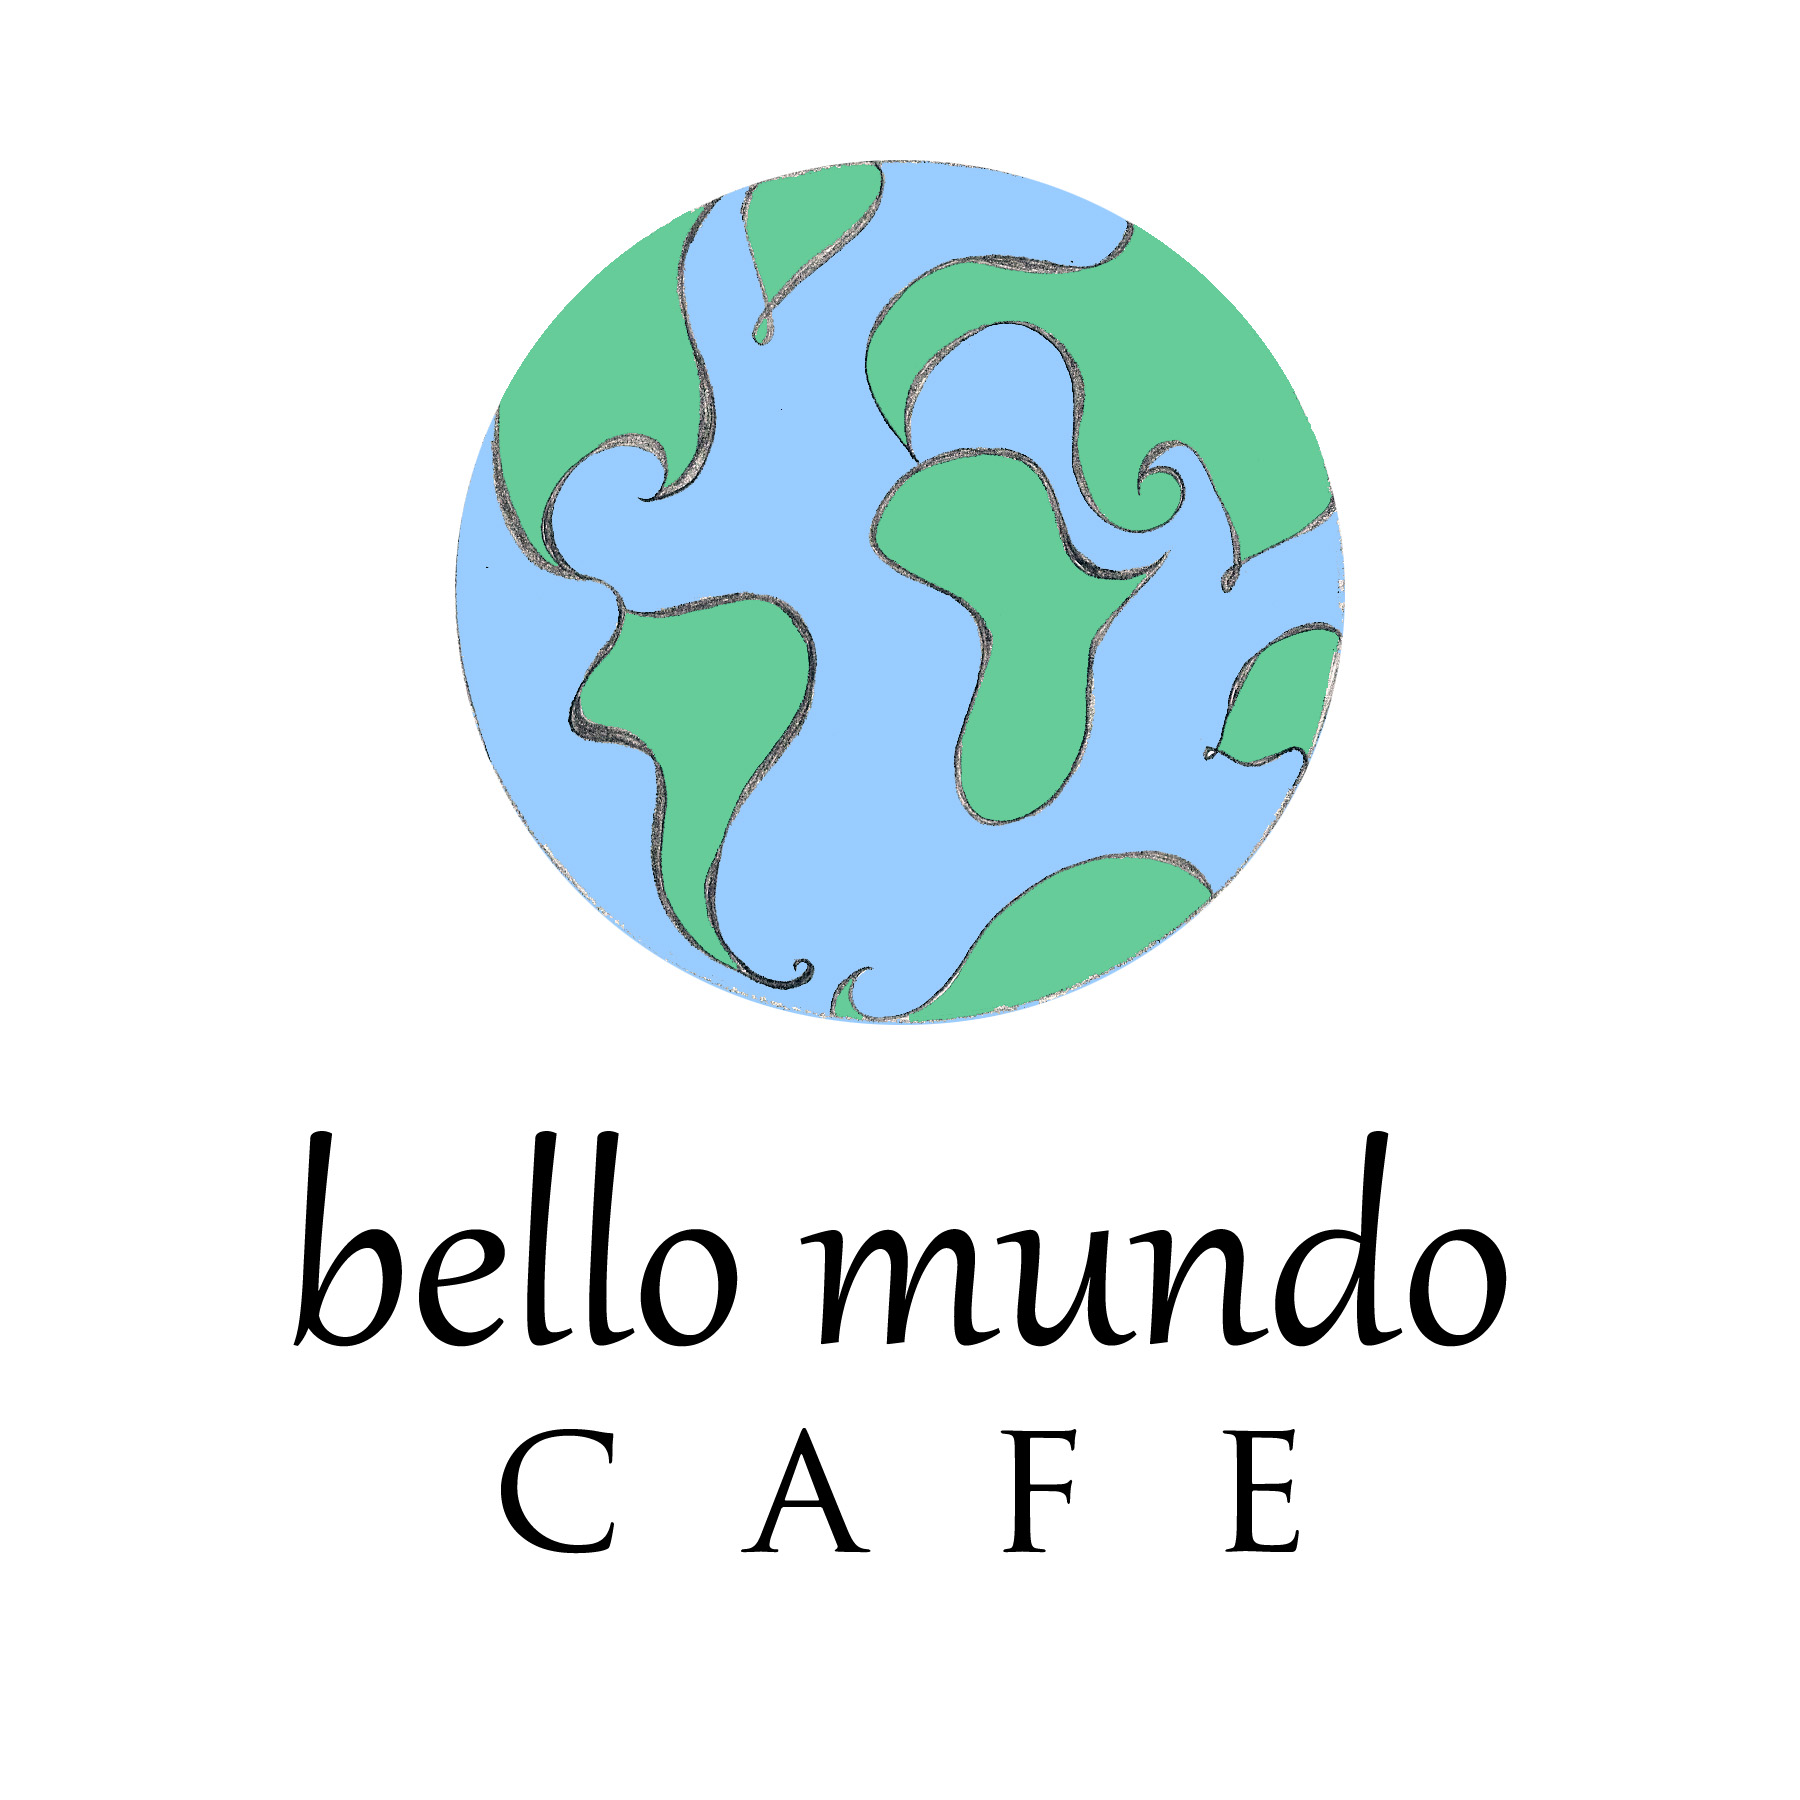 bello mundo cafe